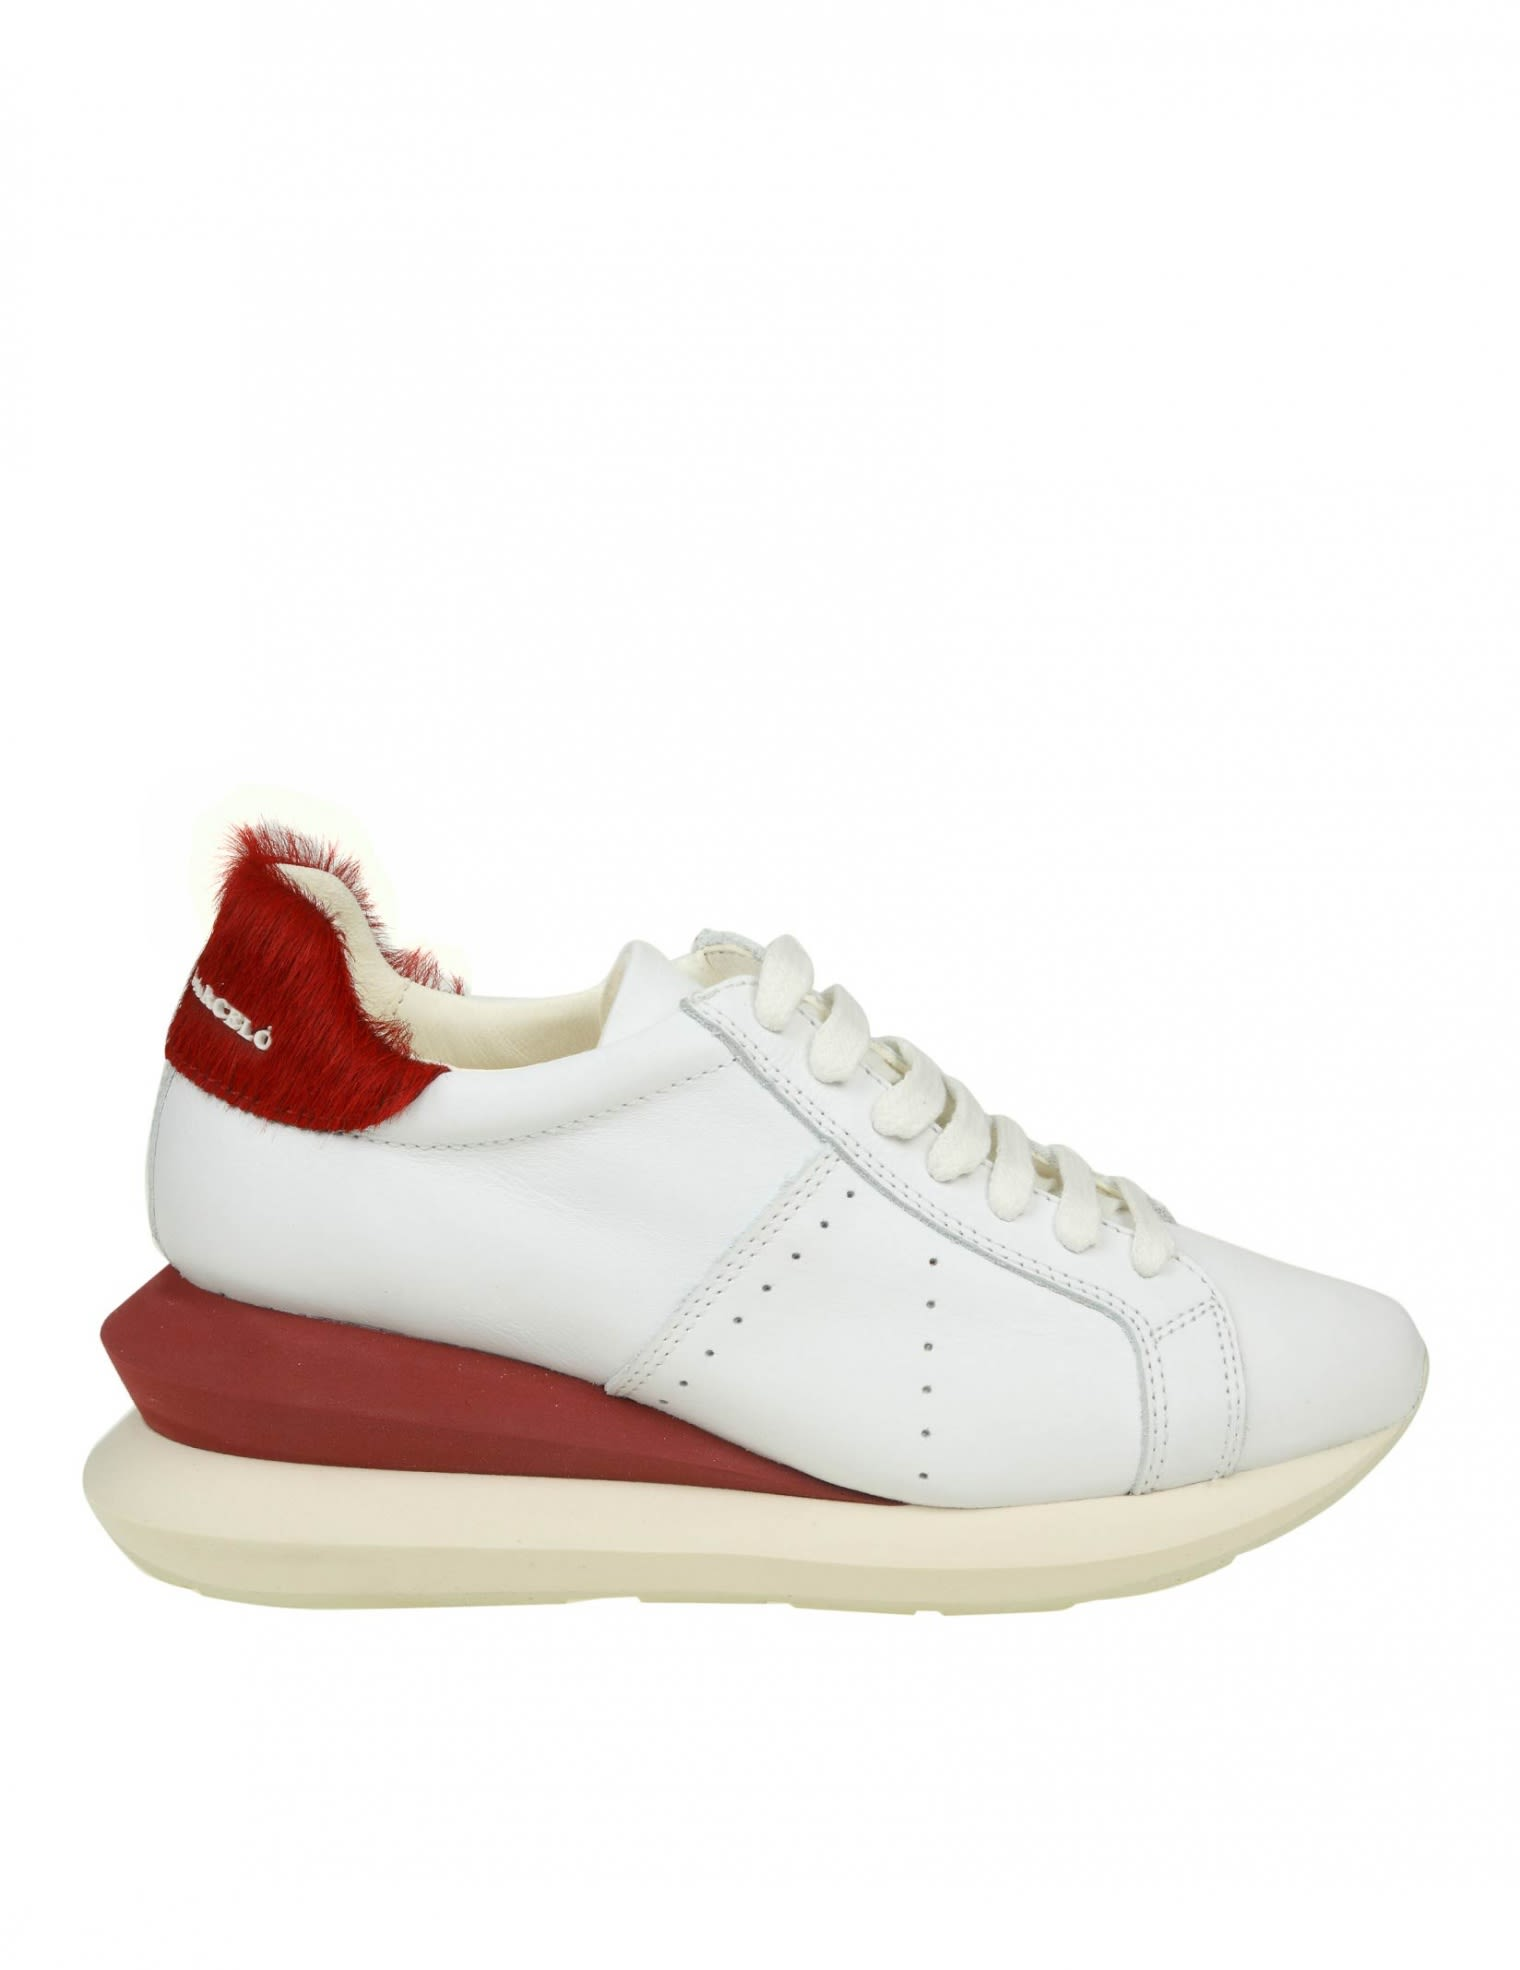 Manuel Barcelo' Sneakers Shoe In White Leather, White/Red